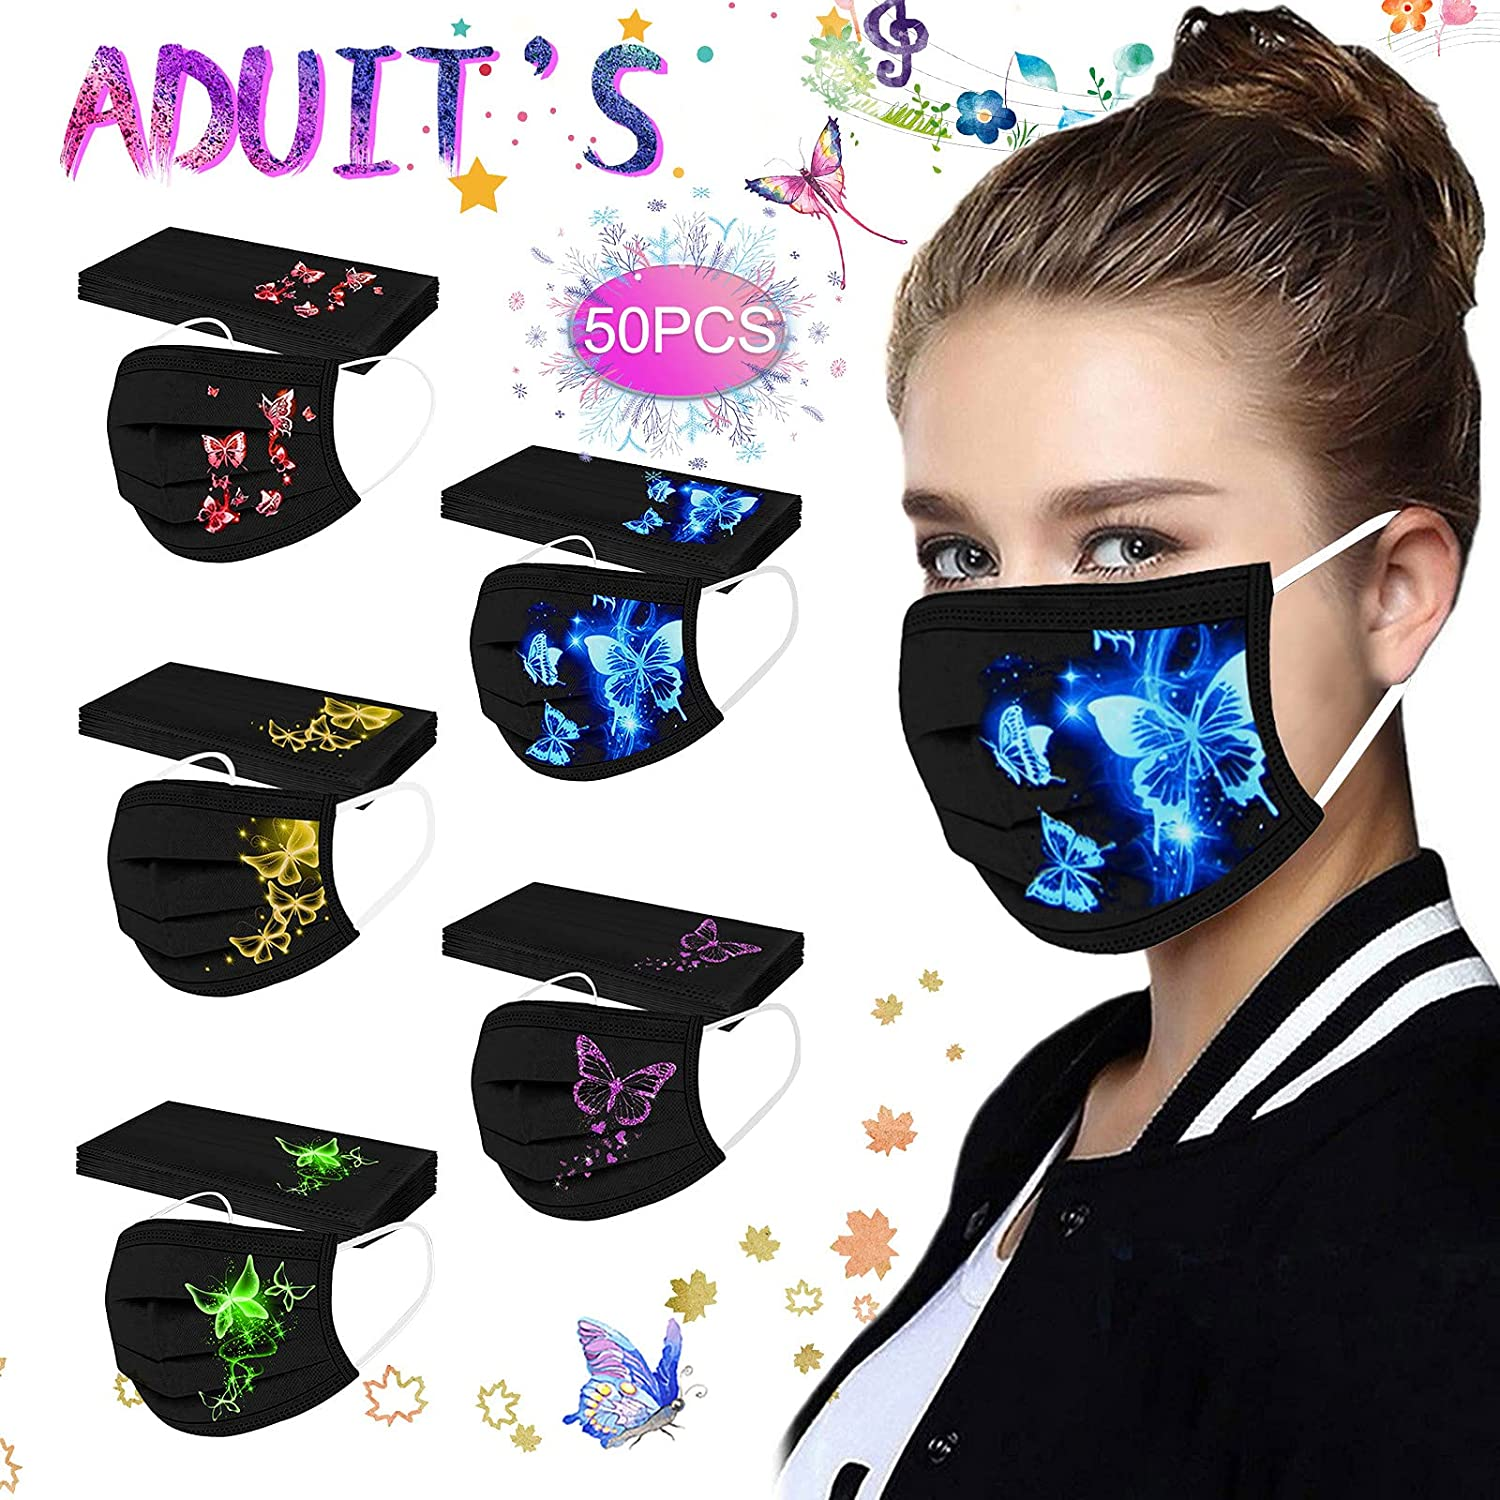 Disposable Adult Mask -Spunlace Cloth Breathable Embossed Protec